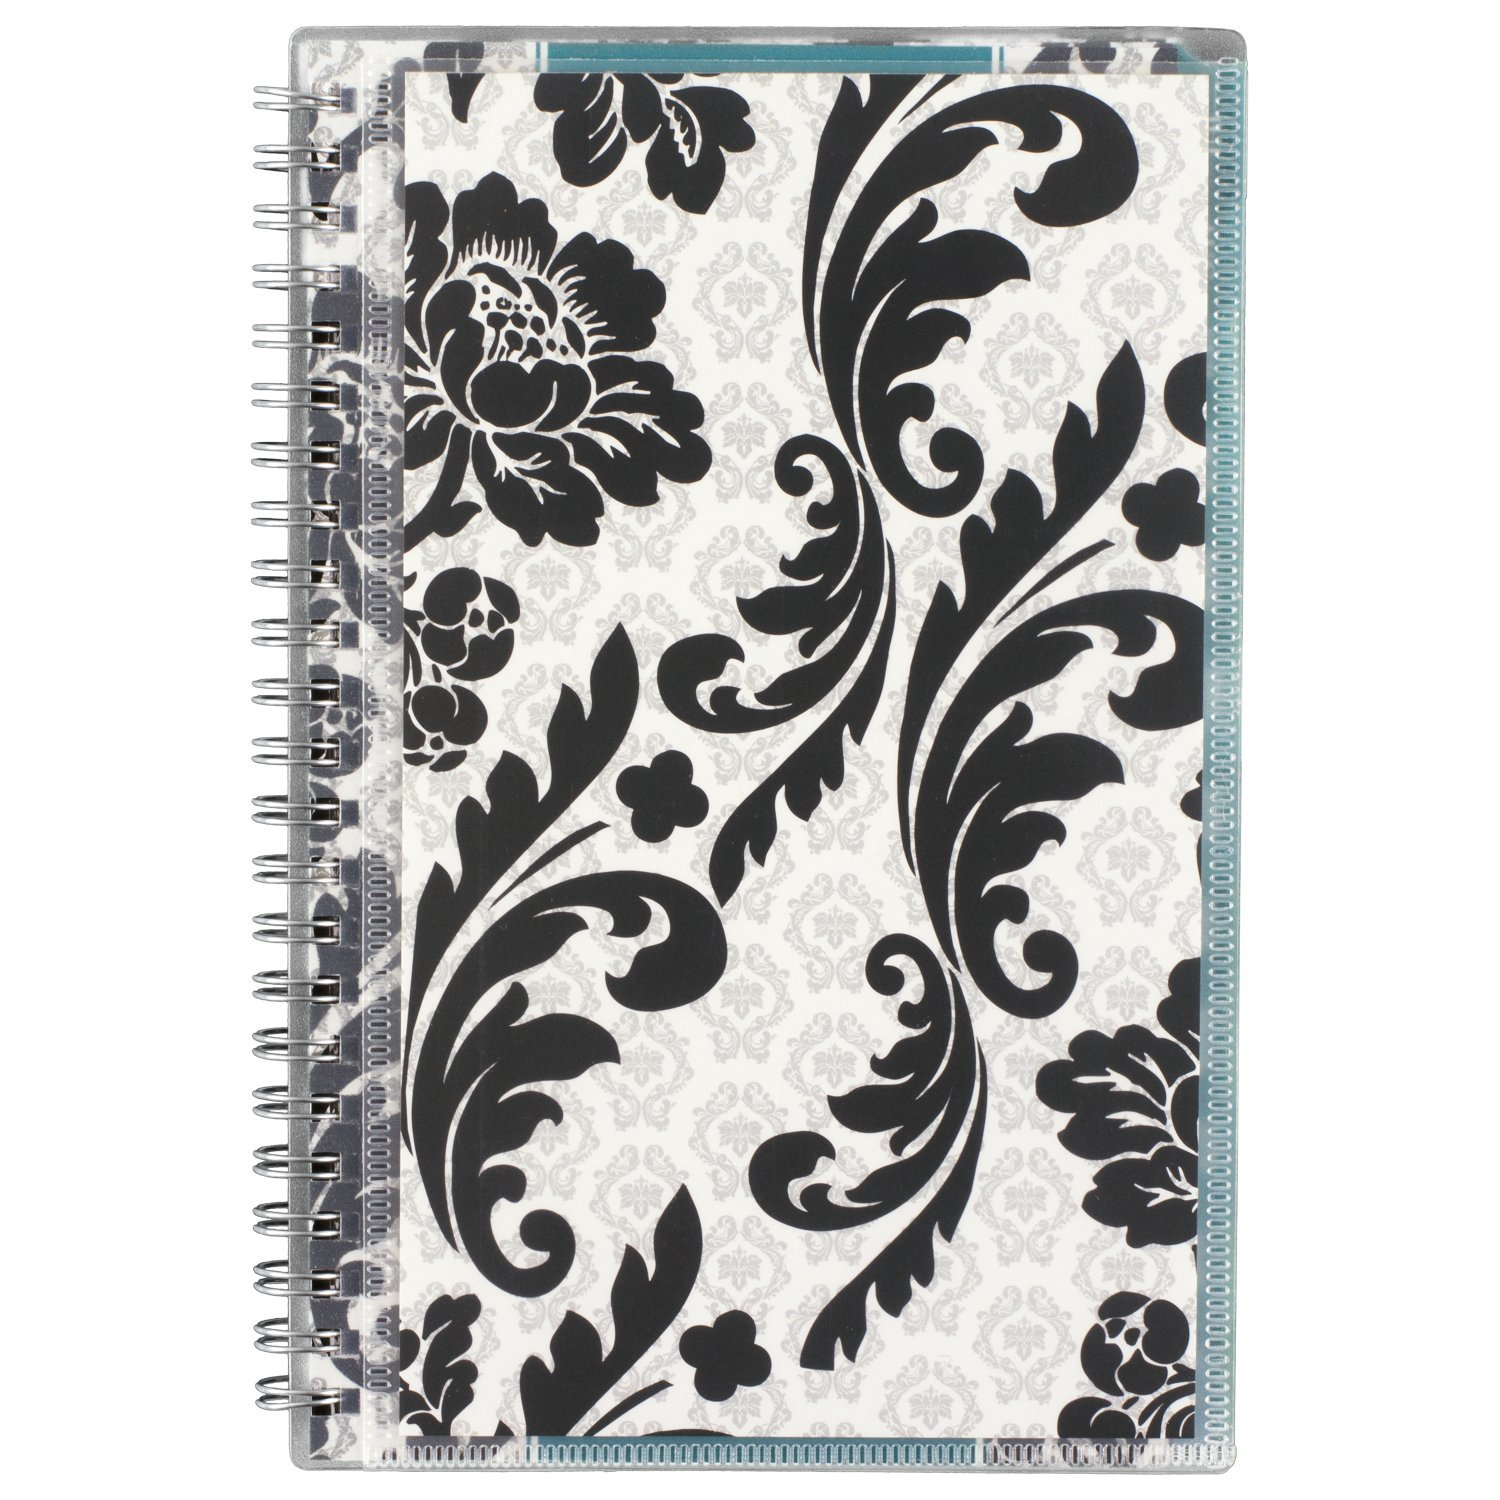 AT-A-GLANCE Academic Weekly / Monthly Appointment Book / Planner, July 2017 - June 2018, 4-7/8'' x 8'', Customizable, Madrid, White/Black (793-201A),'' Small